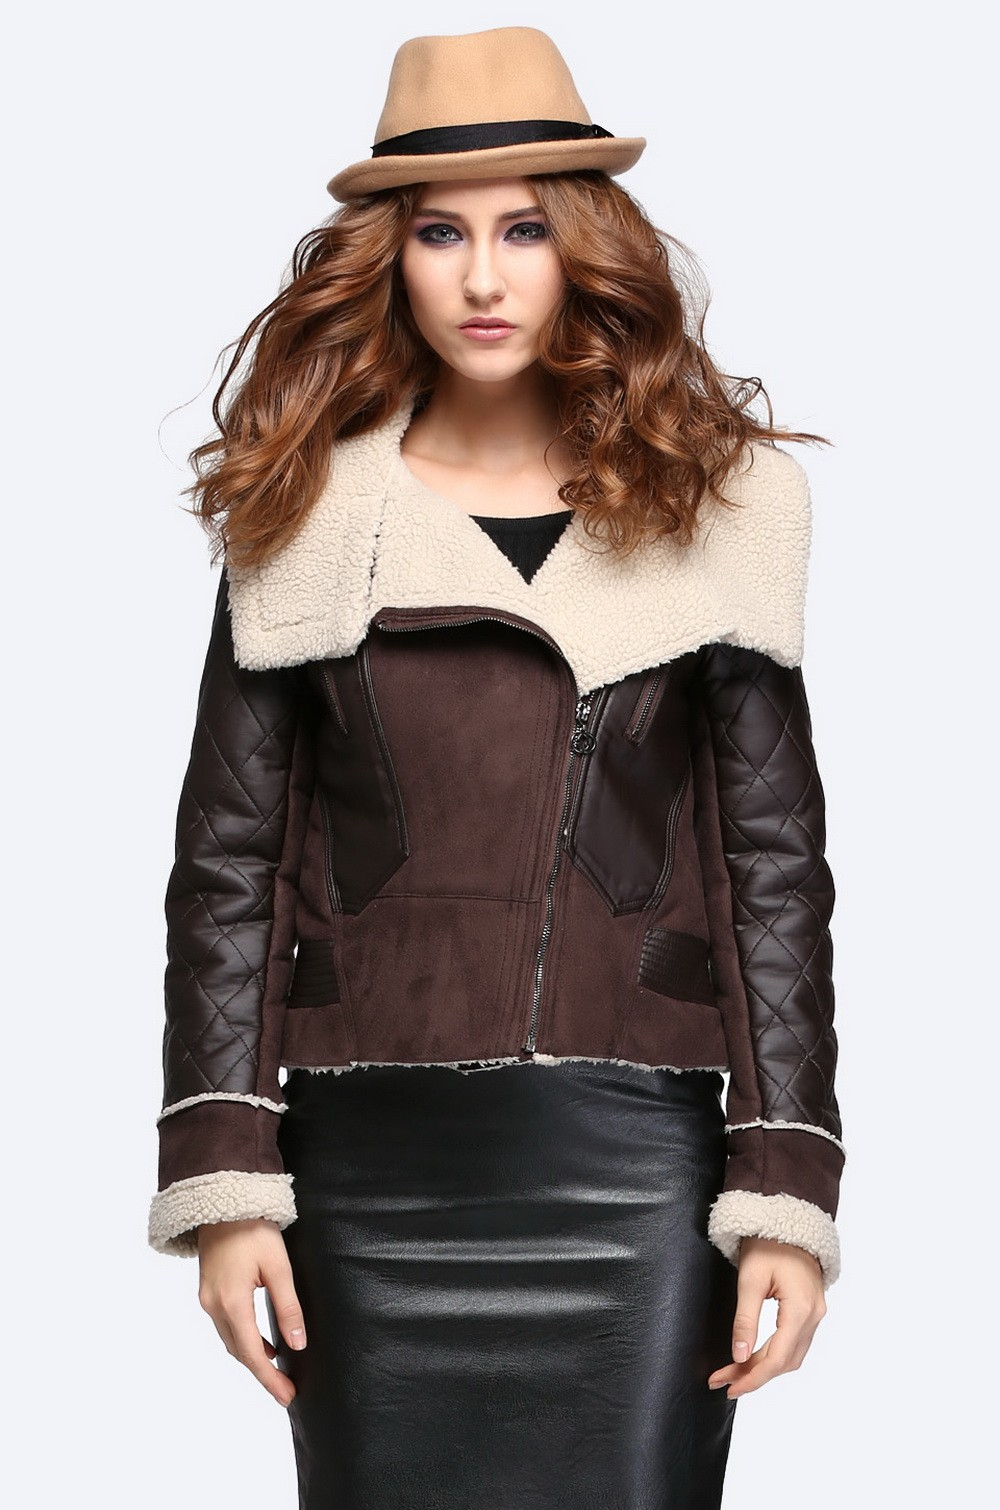 Designer Shearling Coats for Women Promotion-Shop for Promotional ...